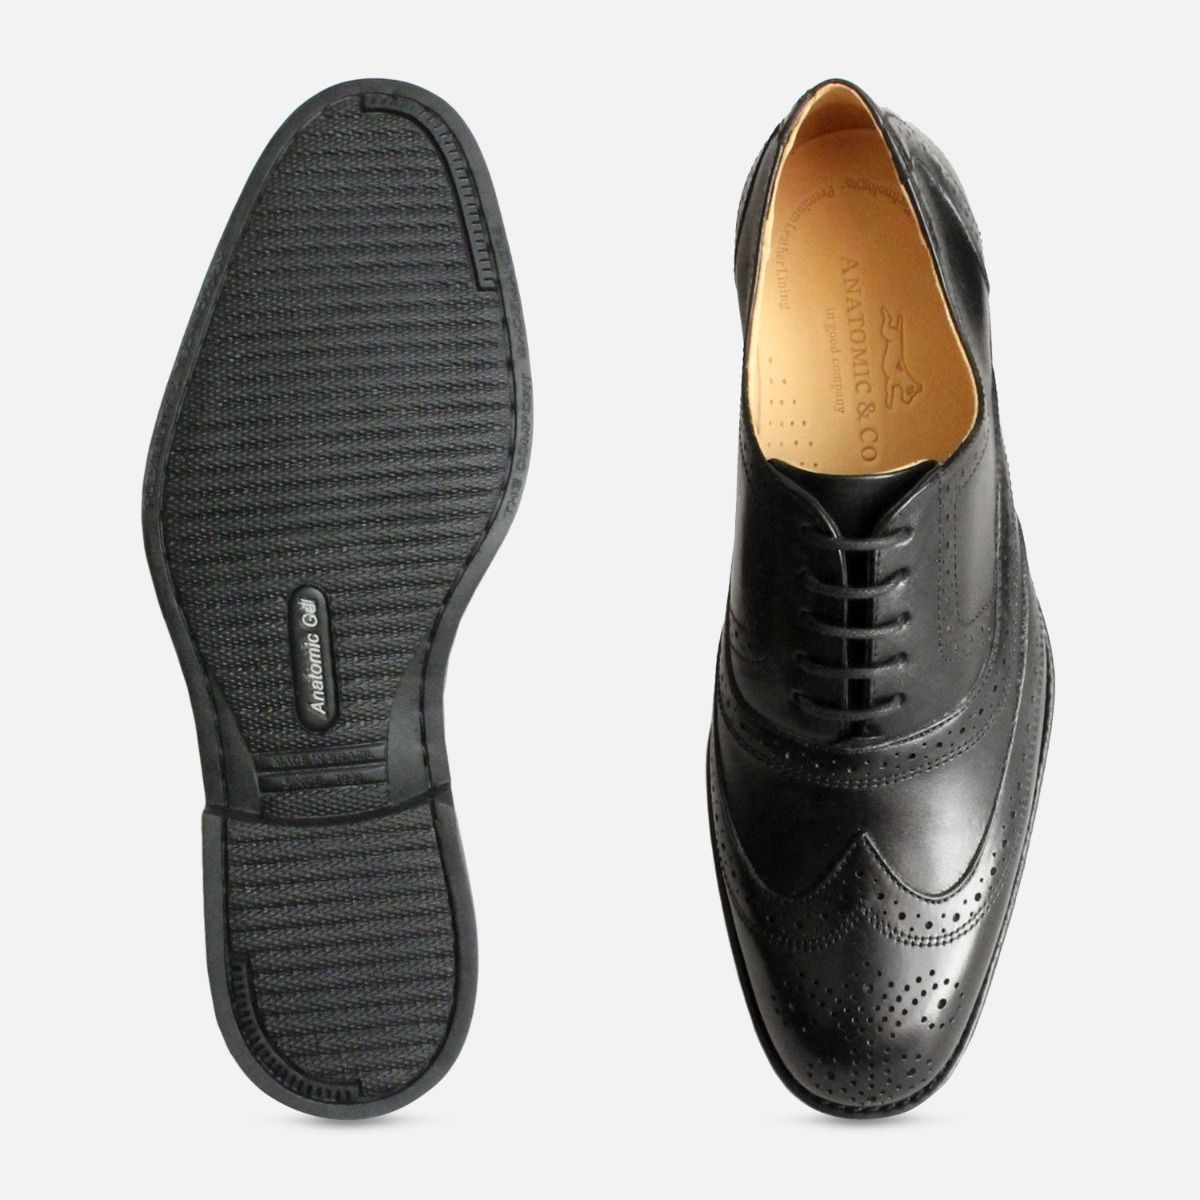 Formal Black Wingtip Oxford Brogues by Anatomic & Co